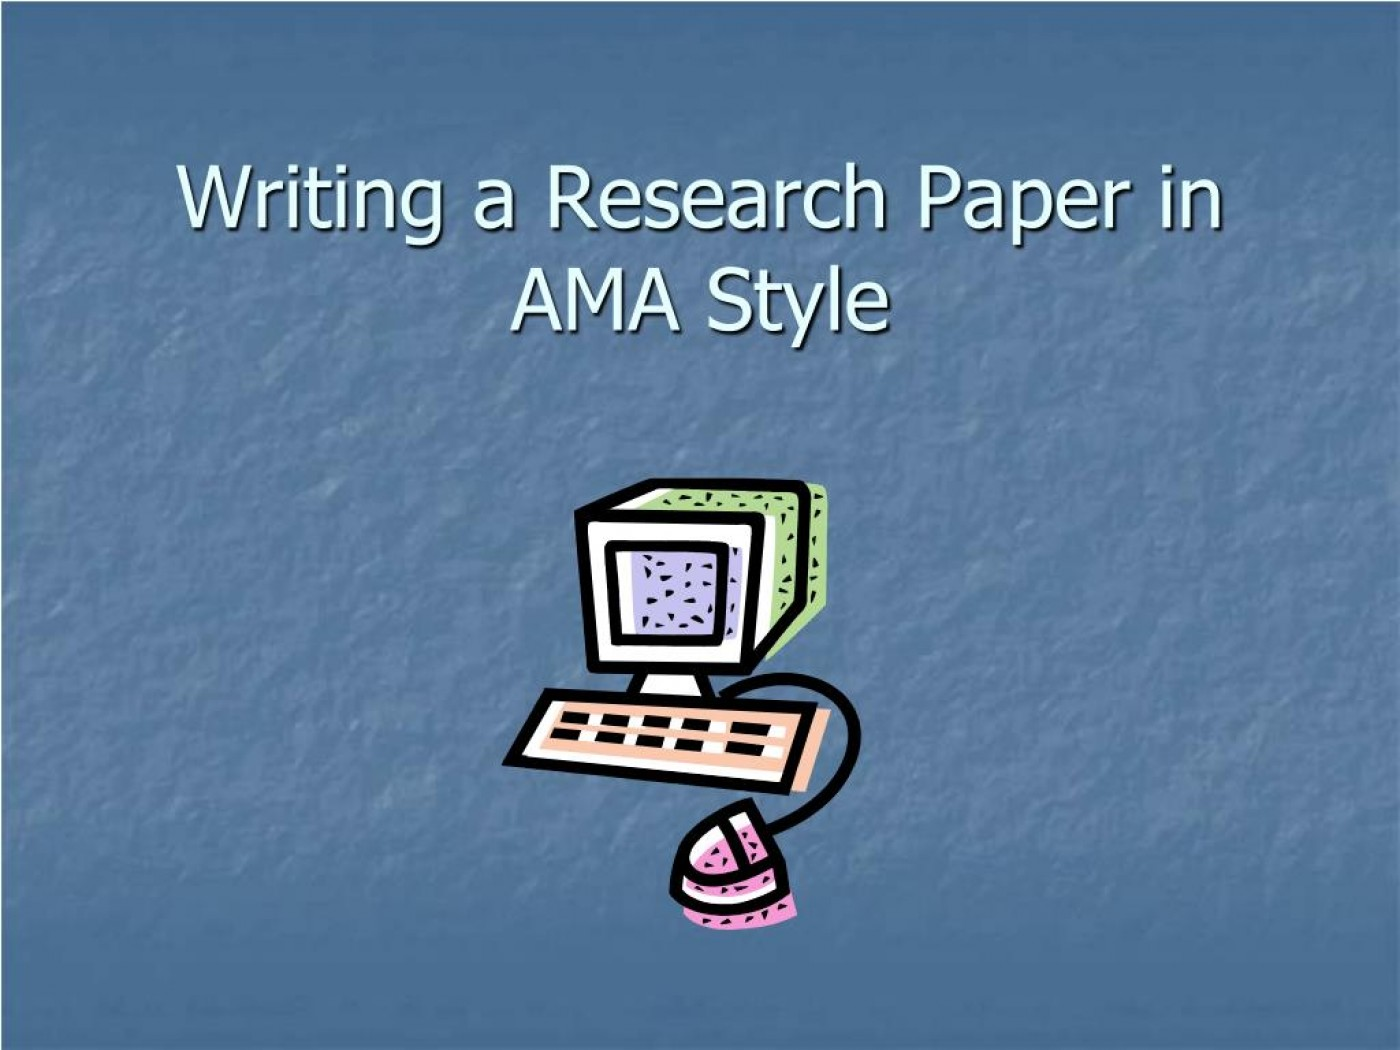 022 Powerpoint Presentation Format For Research Paper Writing In Ama Style Unique Sample Ppt 1400